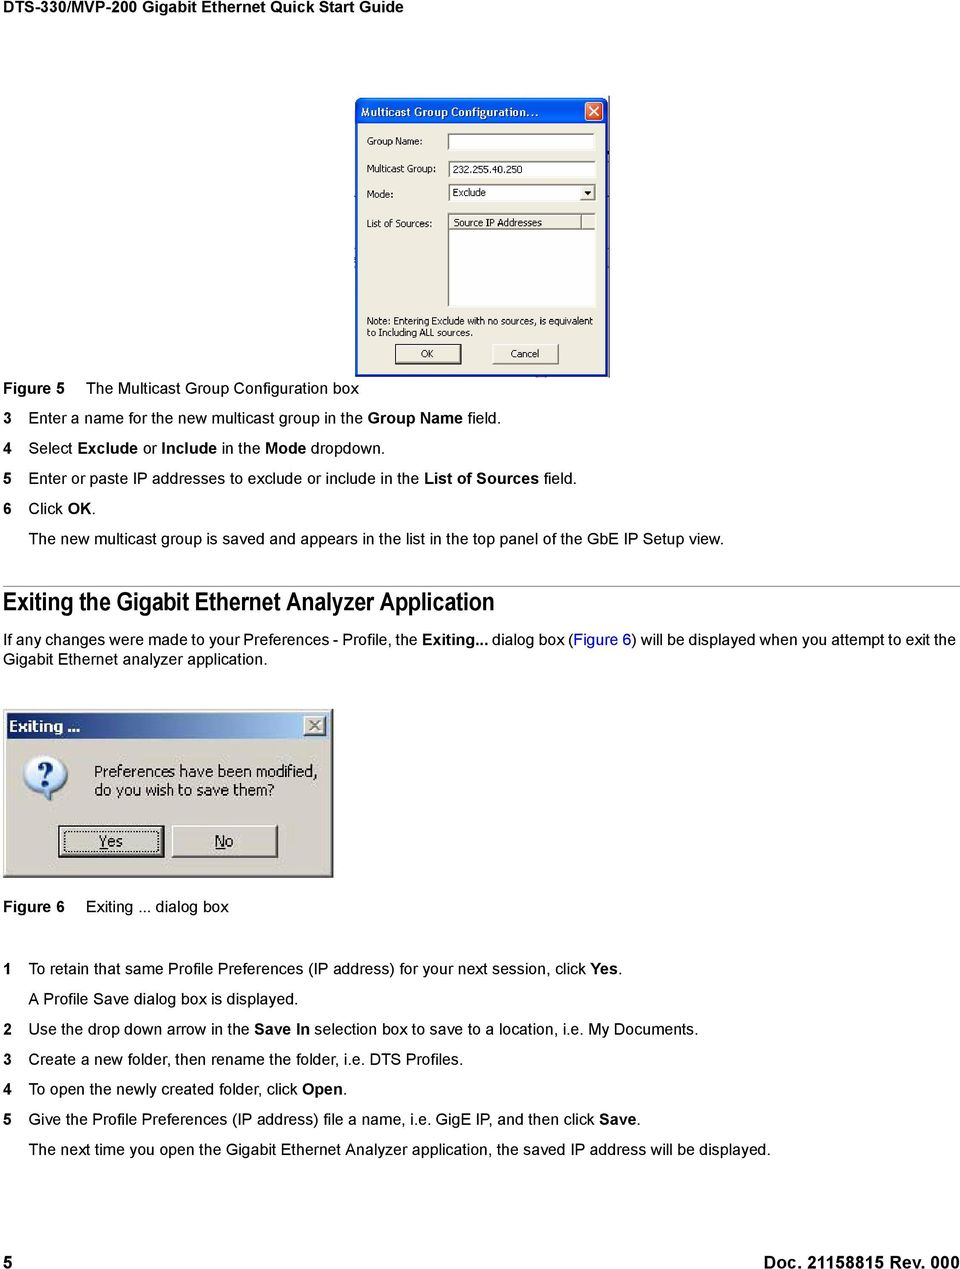 Exiting the Gigabit Ethernet Analyzer Application If any changes were made to your Preferences - Profile, the Exiting.